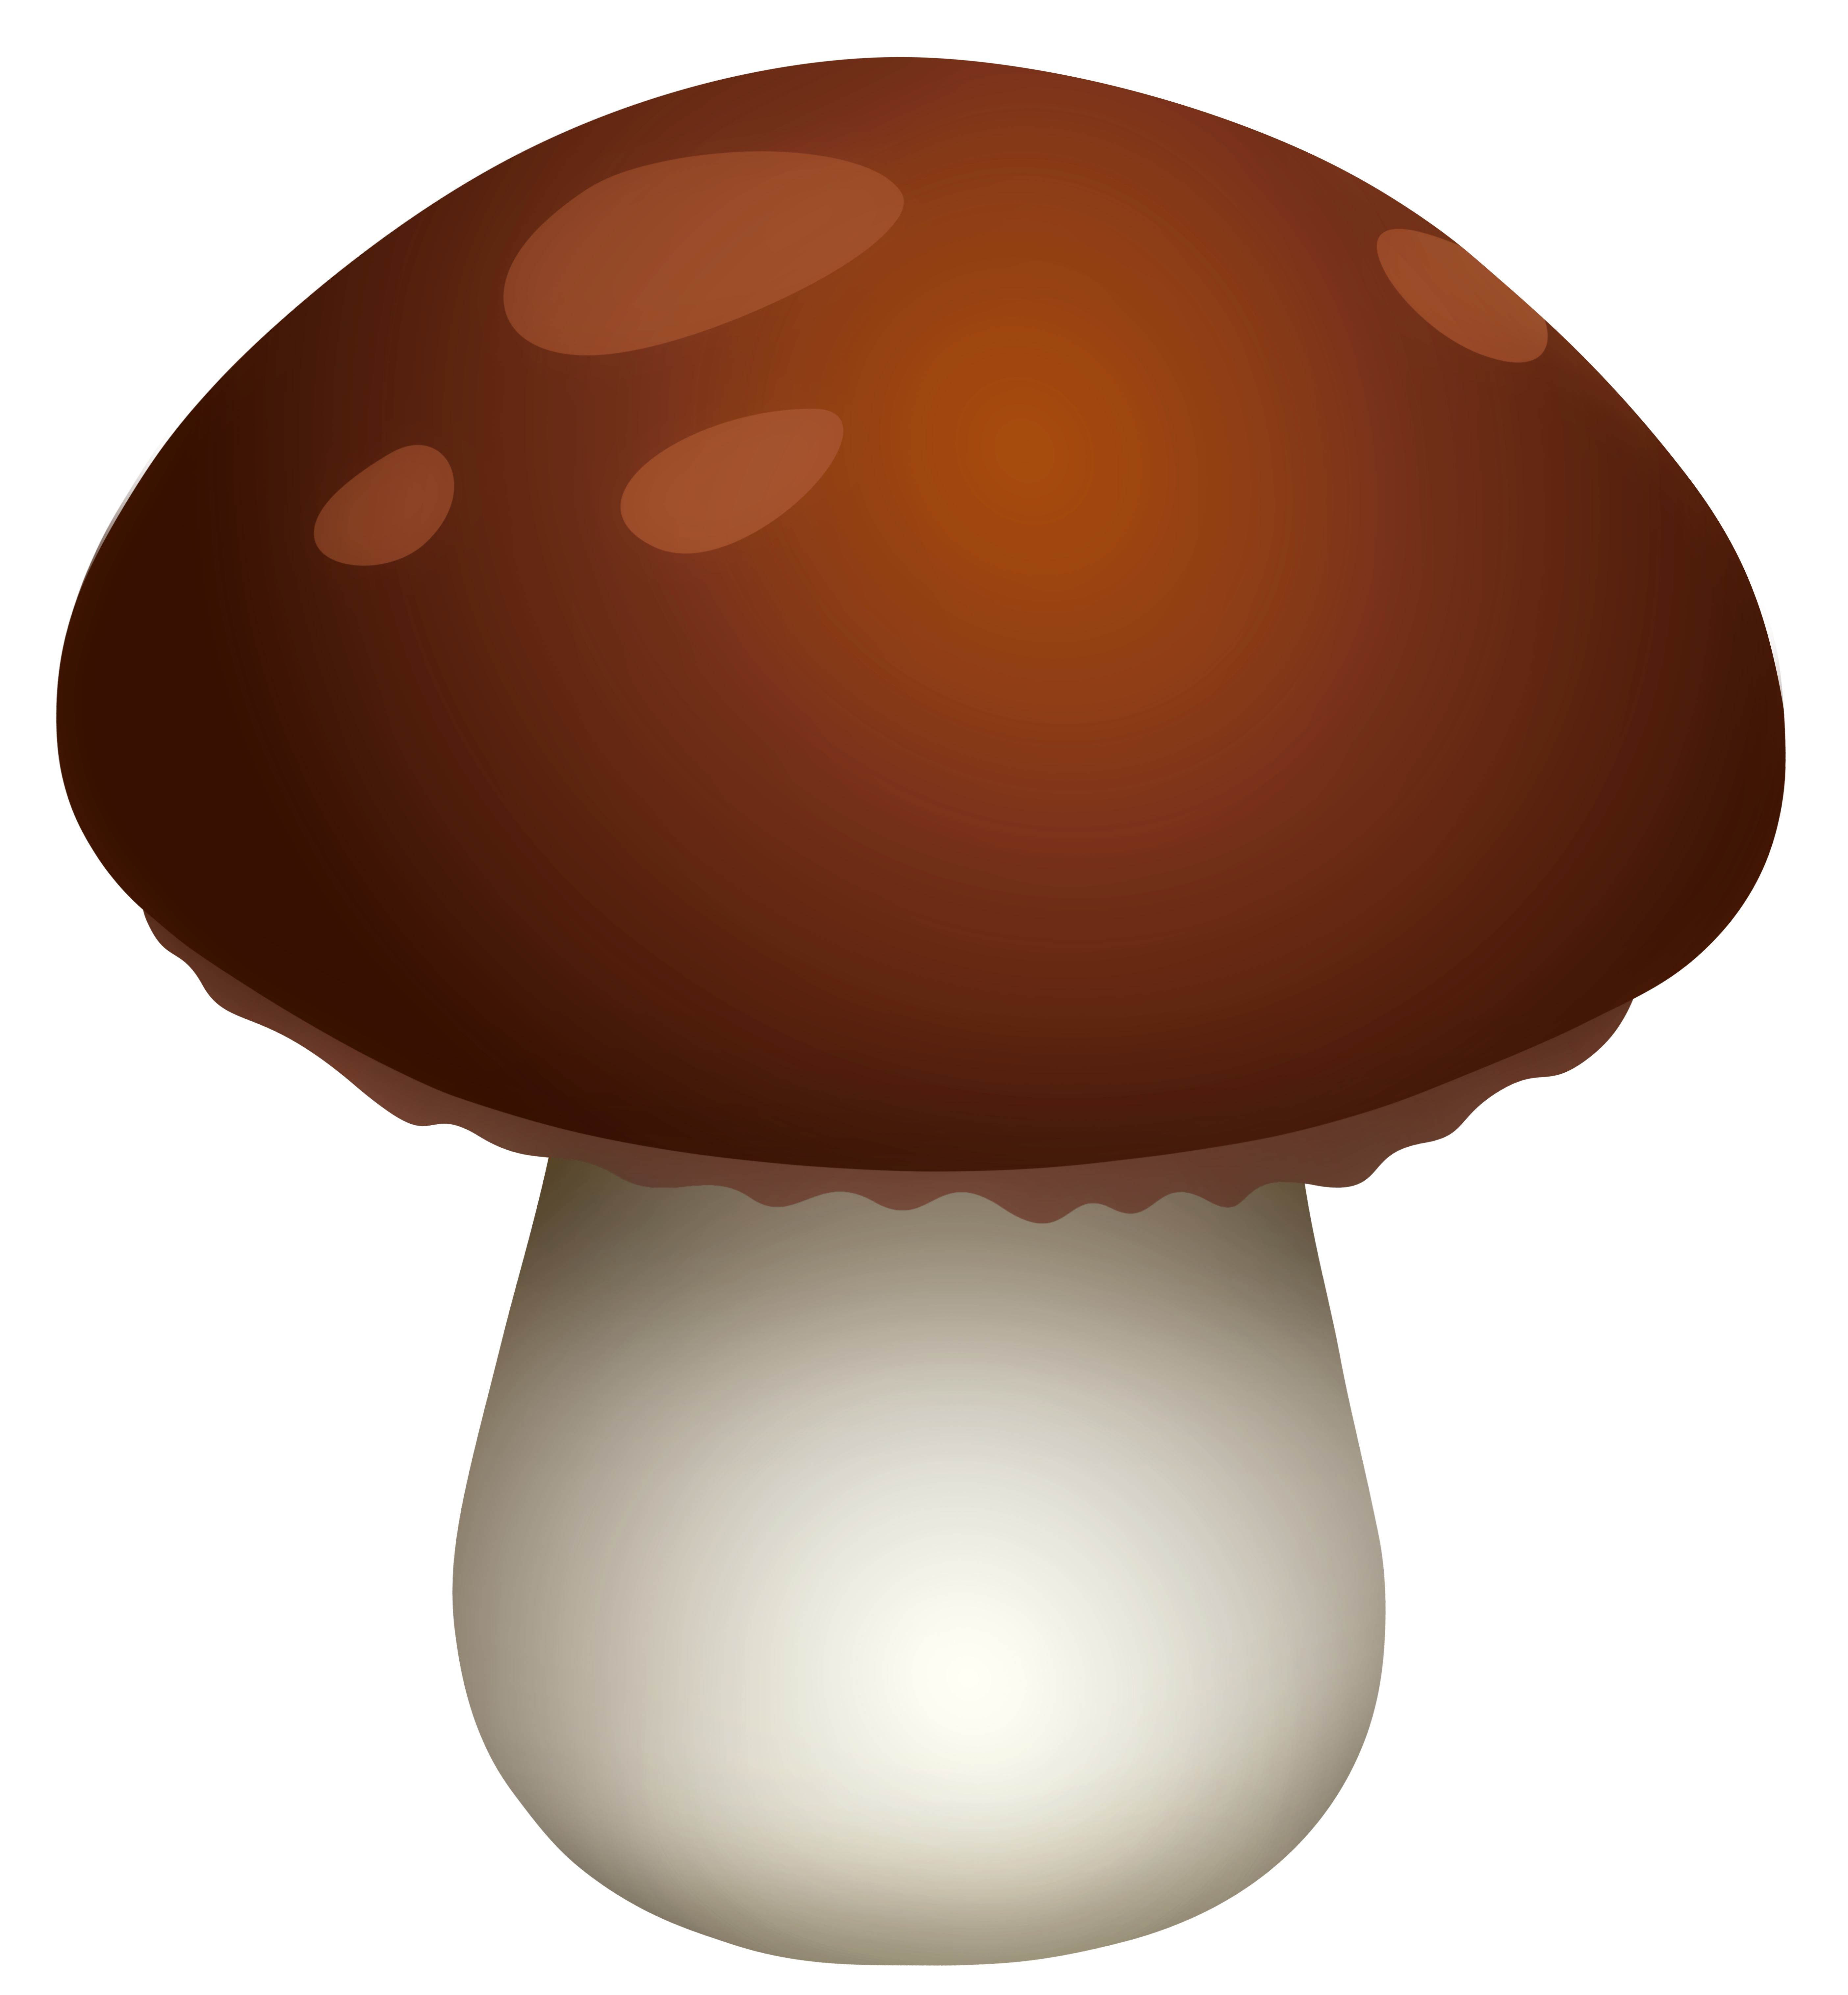 For free images . Mushrooms clipart printable